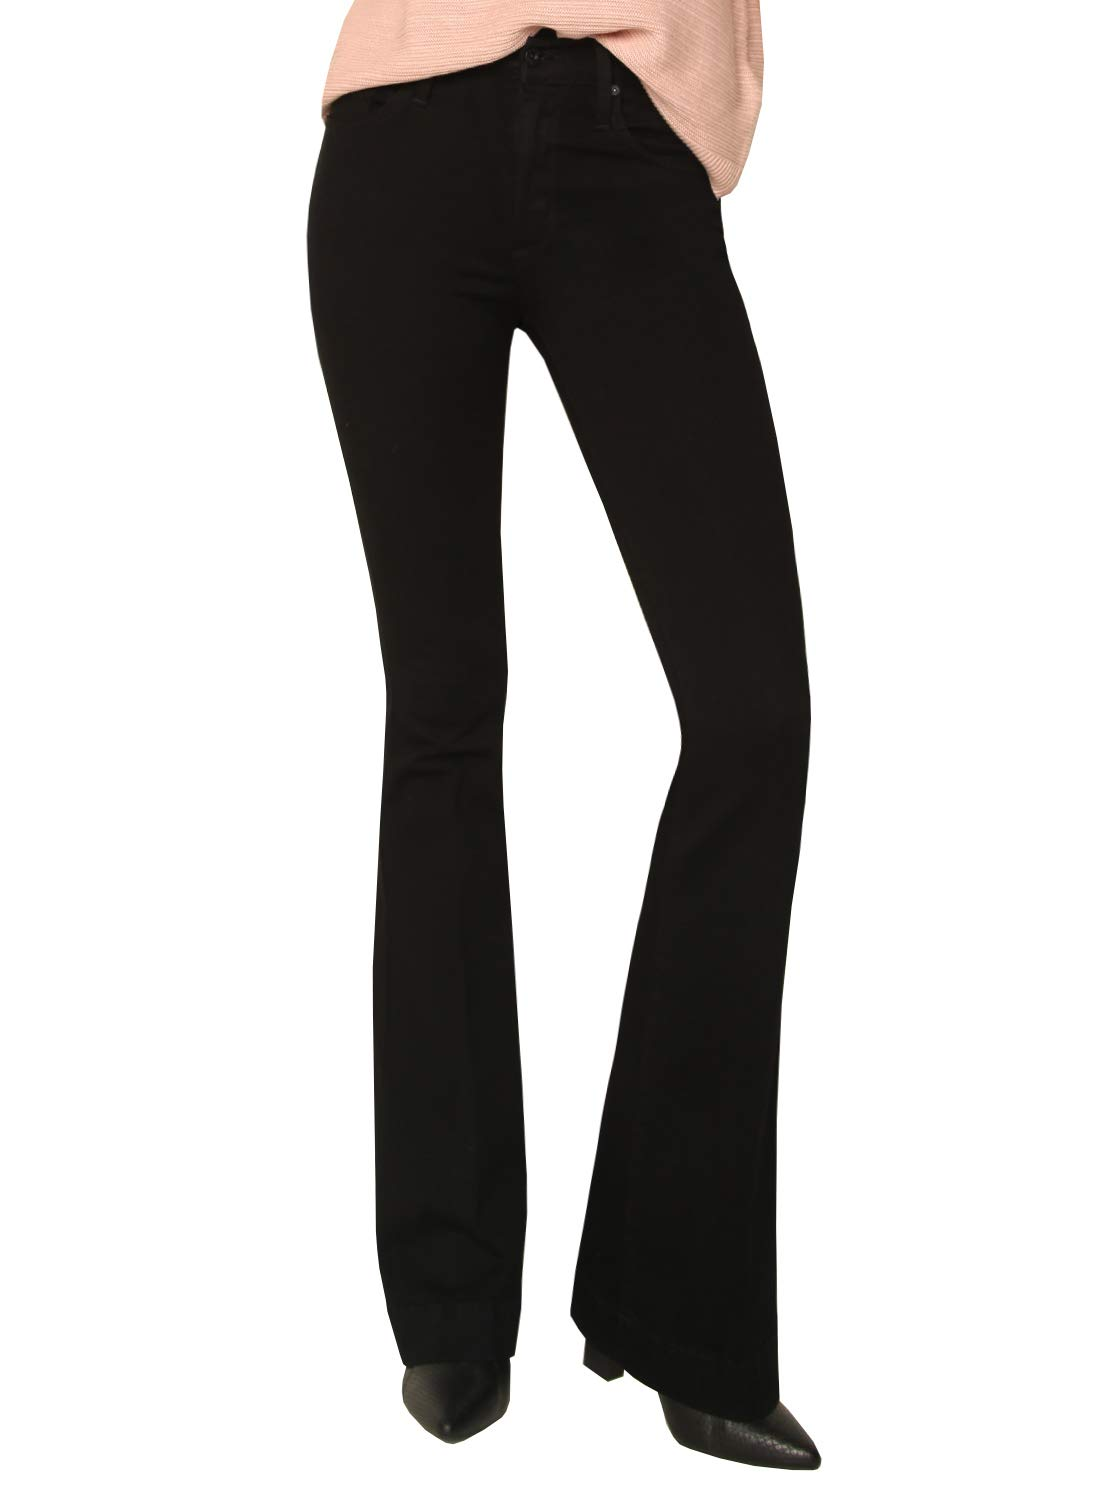 James Jeans Women's High Rise Shayebel Trouser Flare Jeans in Black Swan